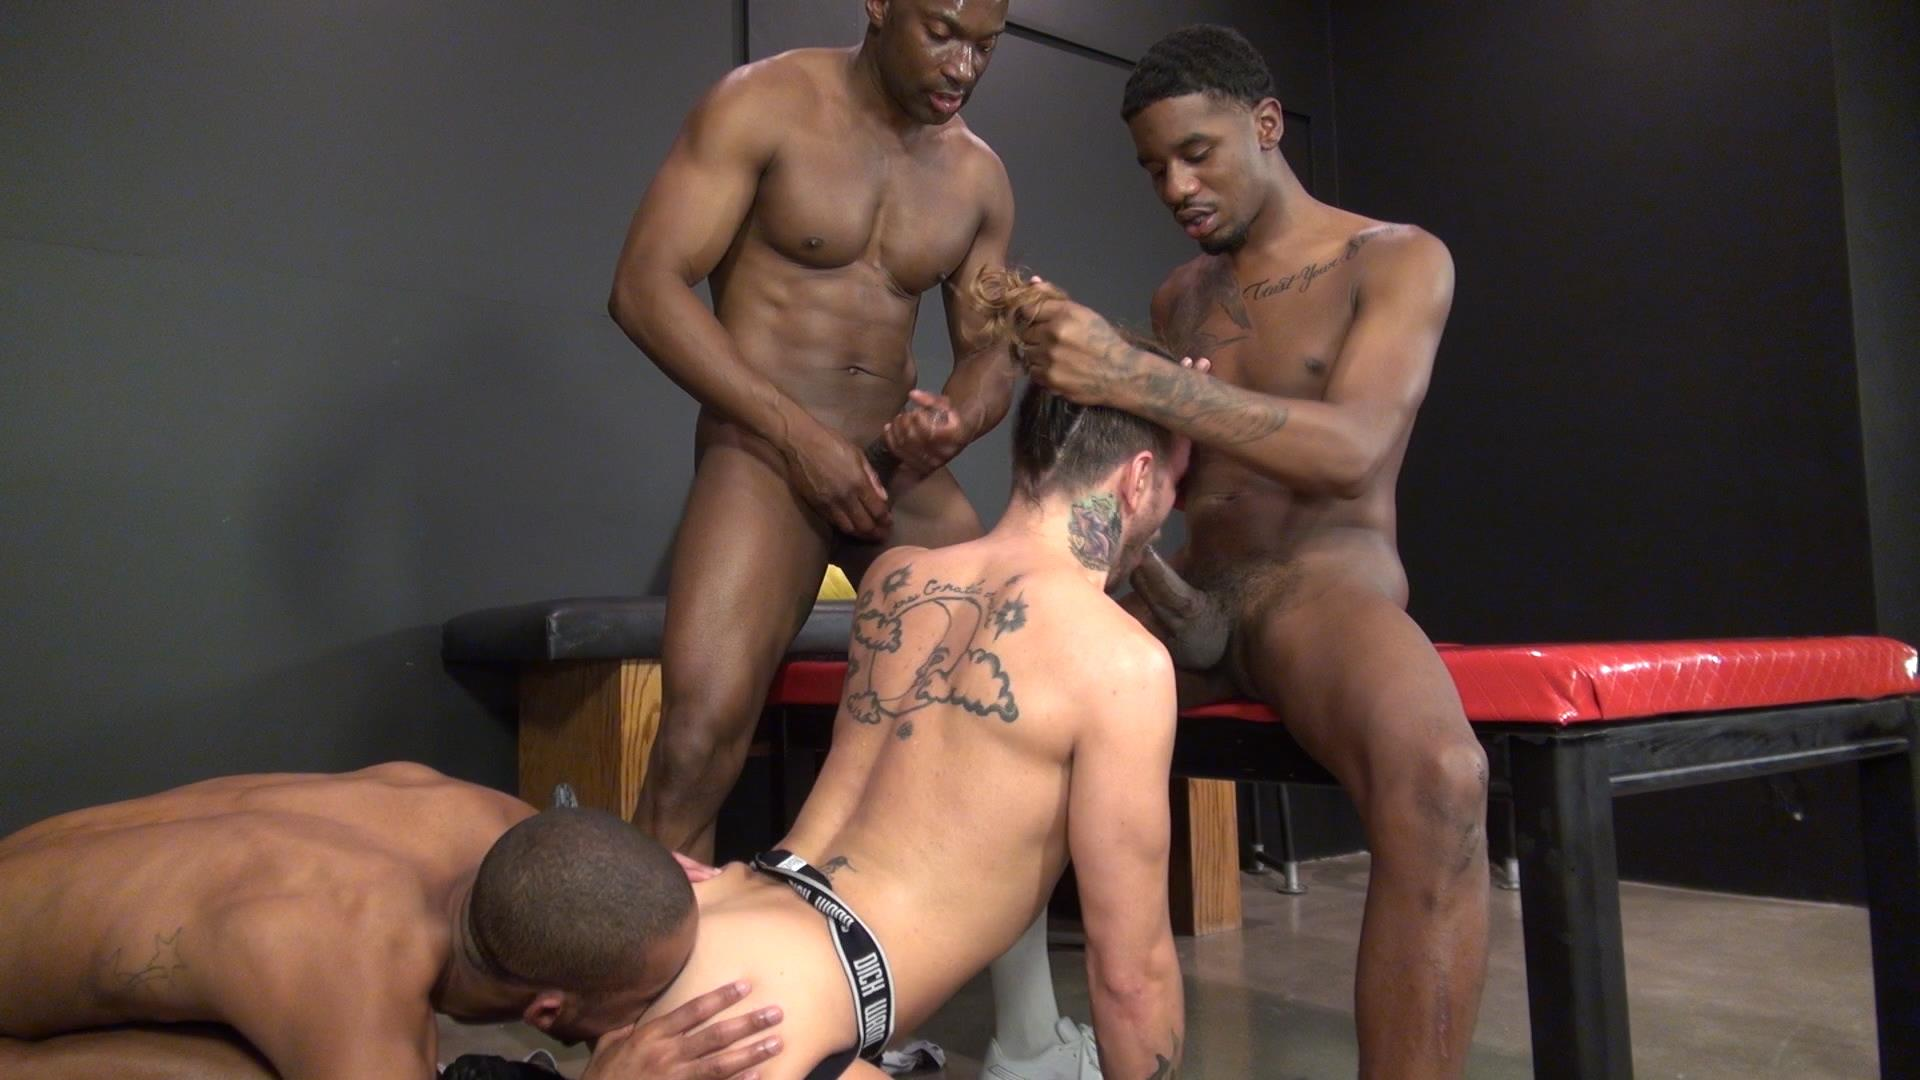 Hot Black Guys Blowing Banging